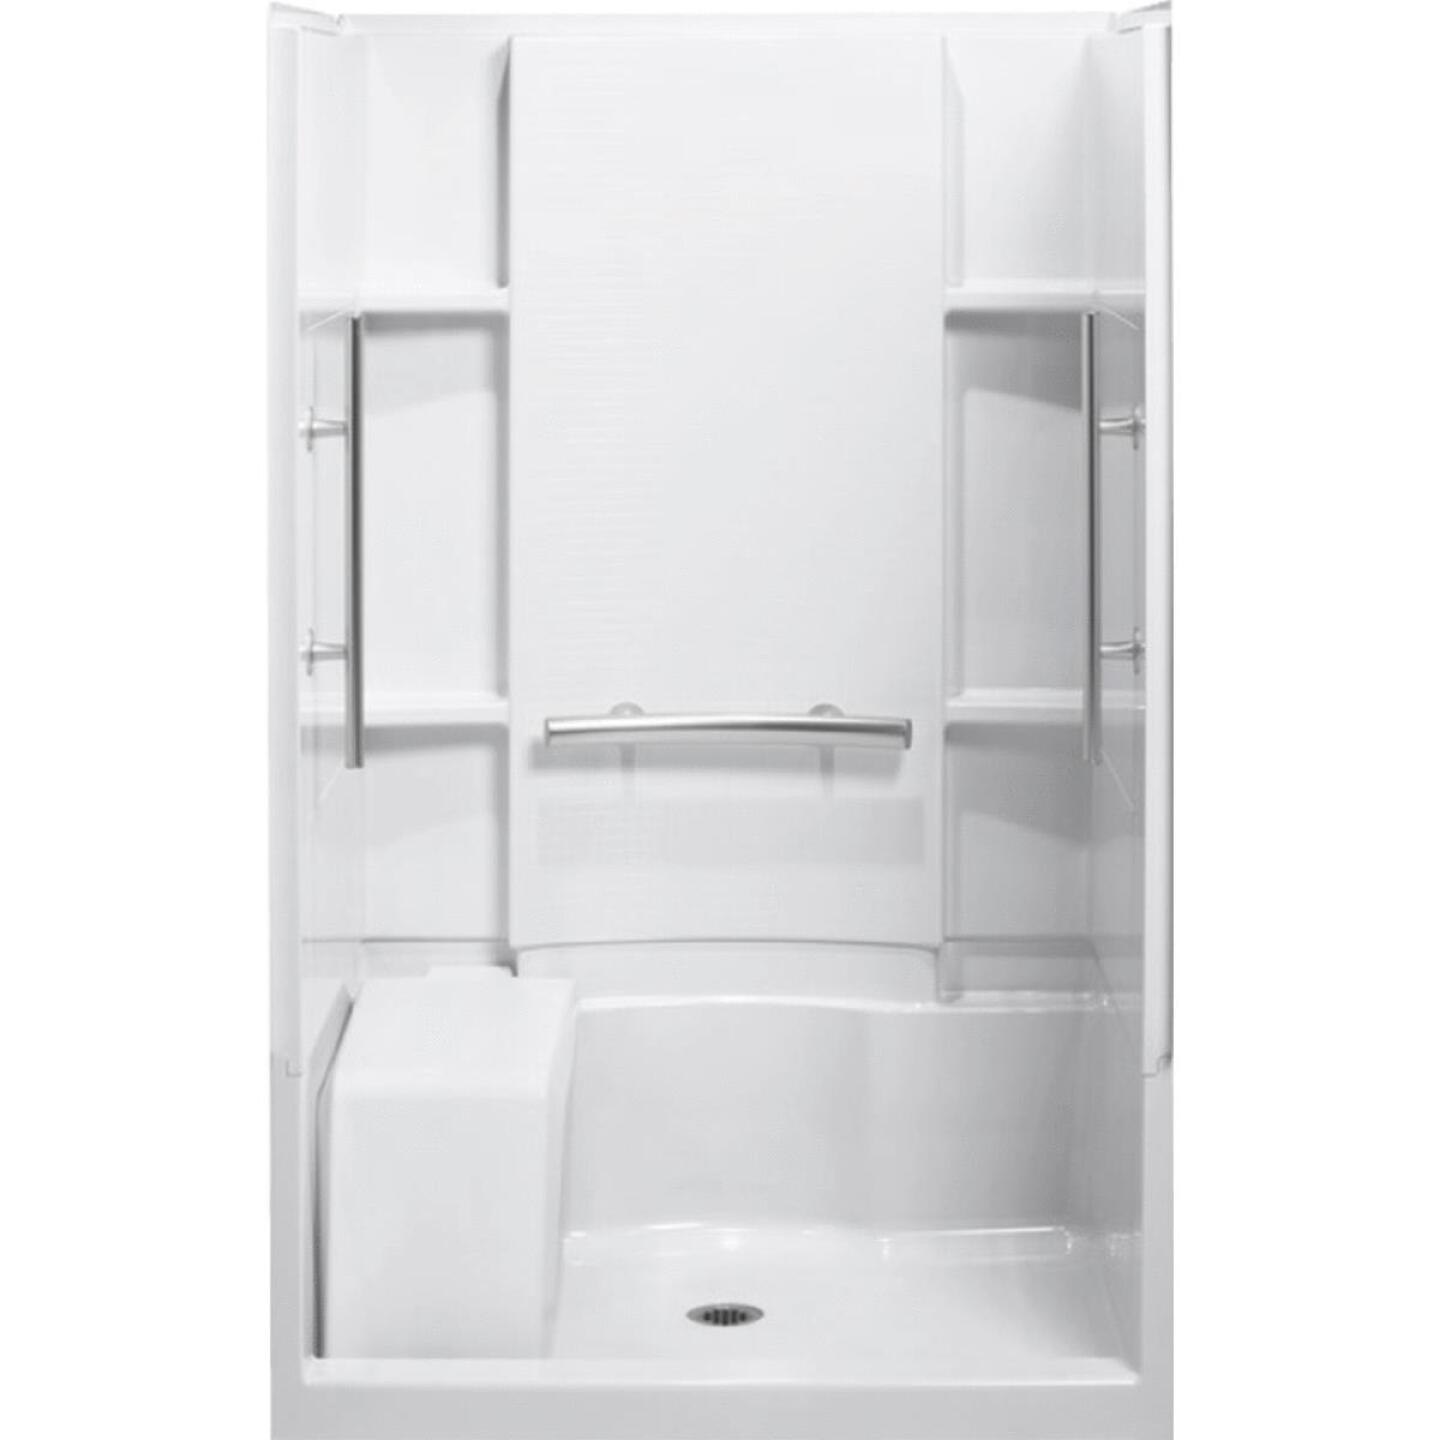 Sterling 3-Piece 36 In. W. x 55-1/8 In. H. x 48 In. L. White Shower Wall Set Image 1